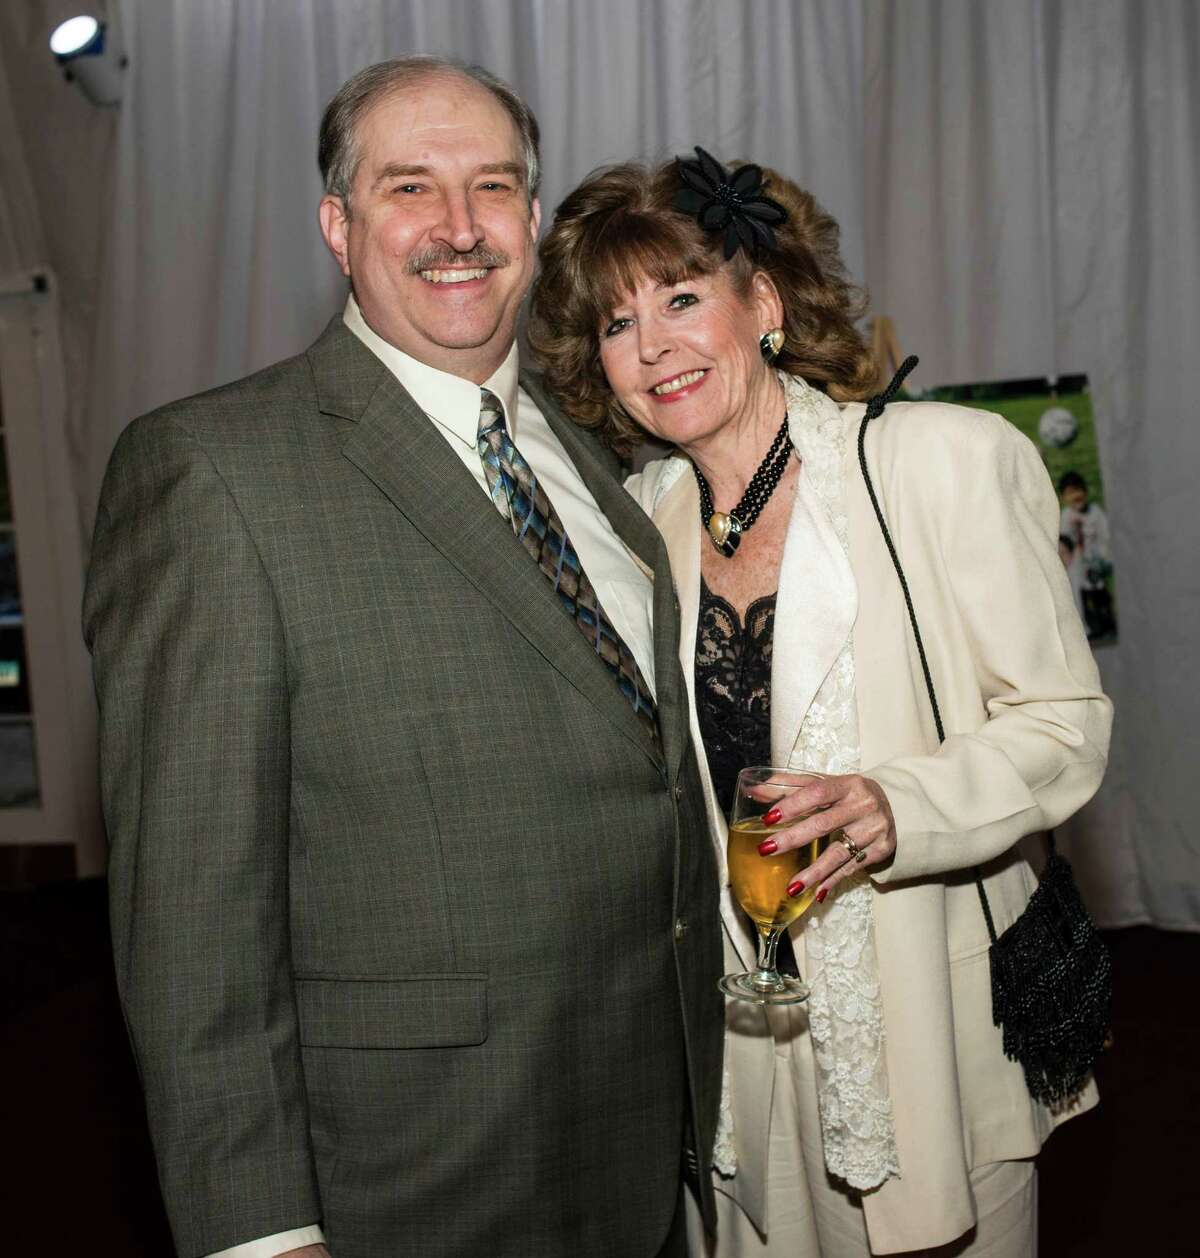 Recipient of the Bill Gonillo Local Sports Media award, Bob Ehalt with his wife Carylanne at the 9th annual Fairfield County Sports Hall of Fame Sports Night held at the Greenwich Hyatt Regency, Greenwich, CT on Monday, October, 21st, 2013.